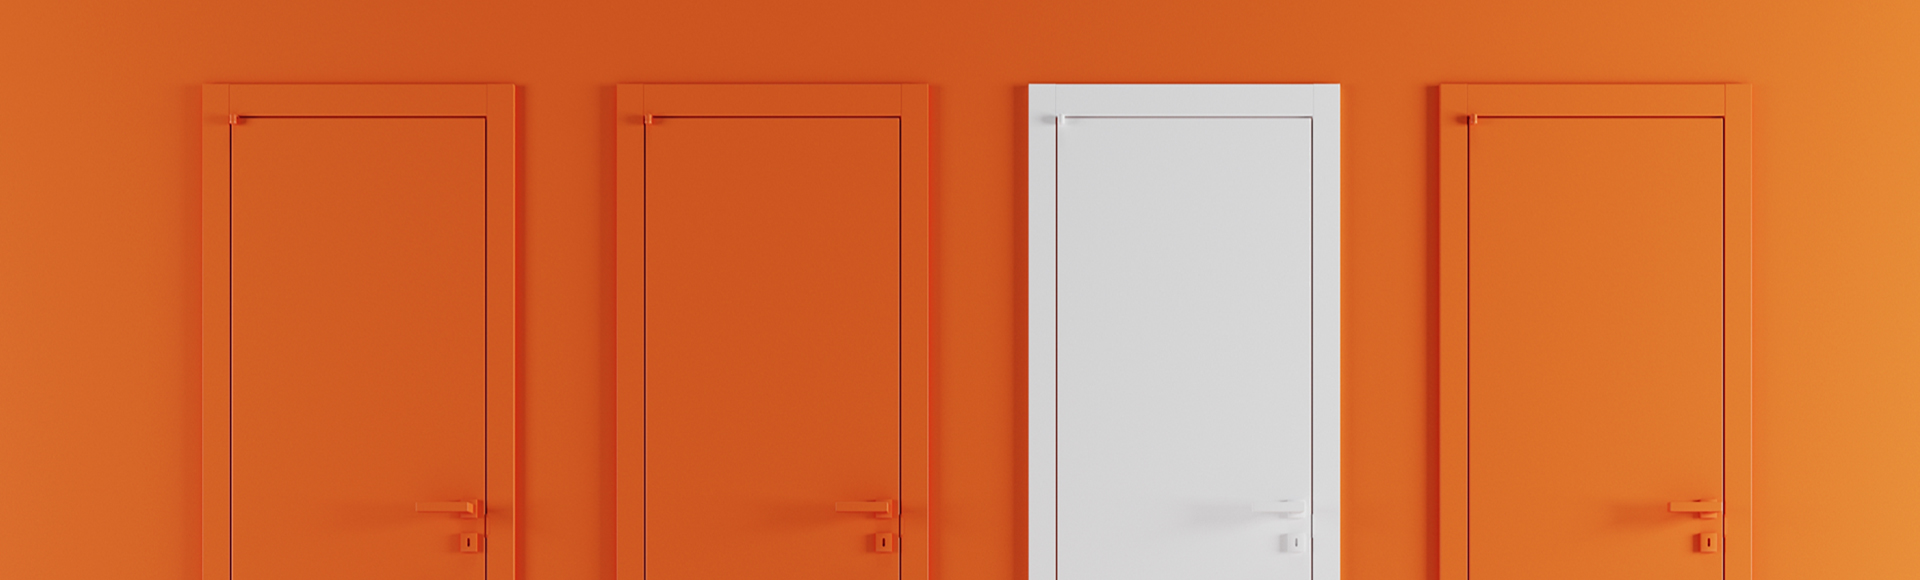 One white door stands out against three orange doors representing a stand-out candidate during the hiring process who has options to consider.